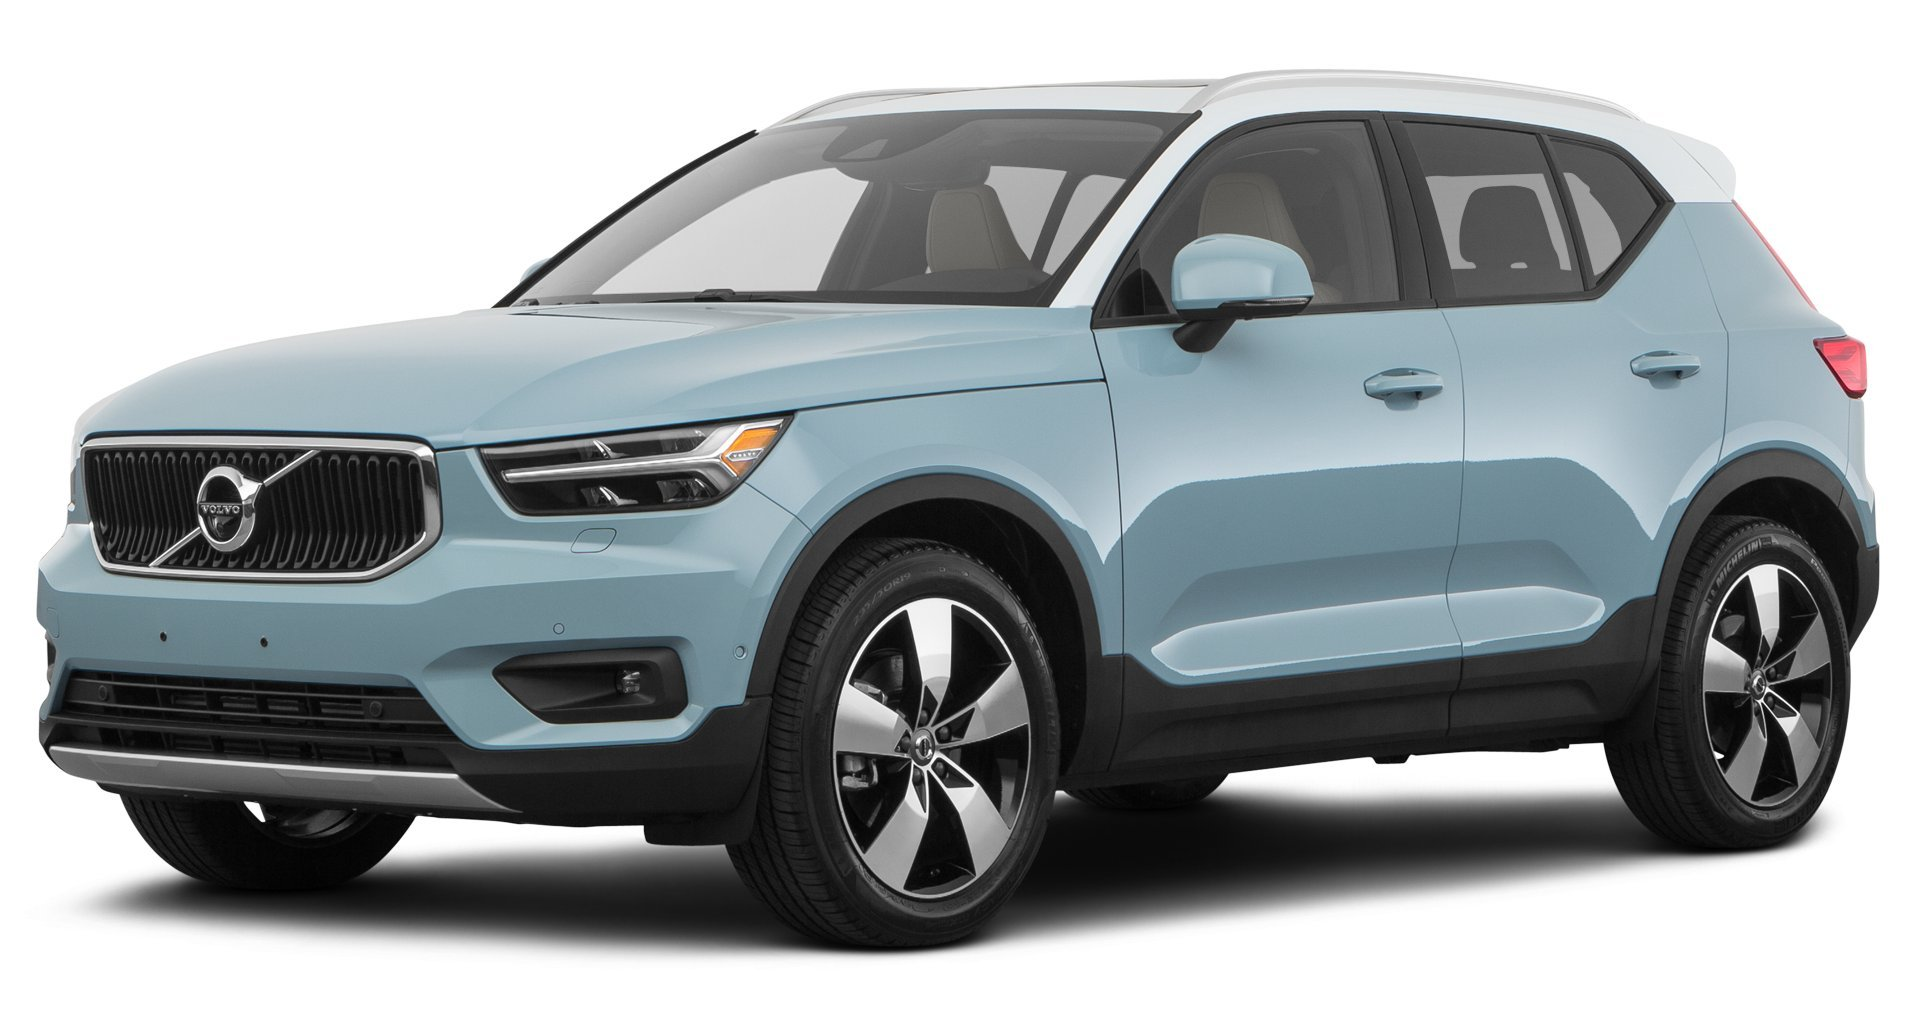 Amazon.com: 2019 Volvo XC40 Reviews, Images, and Specs ...